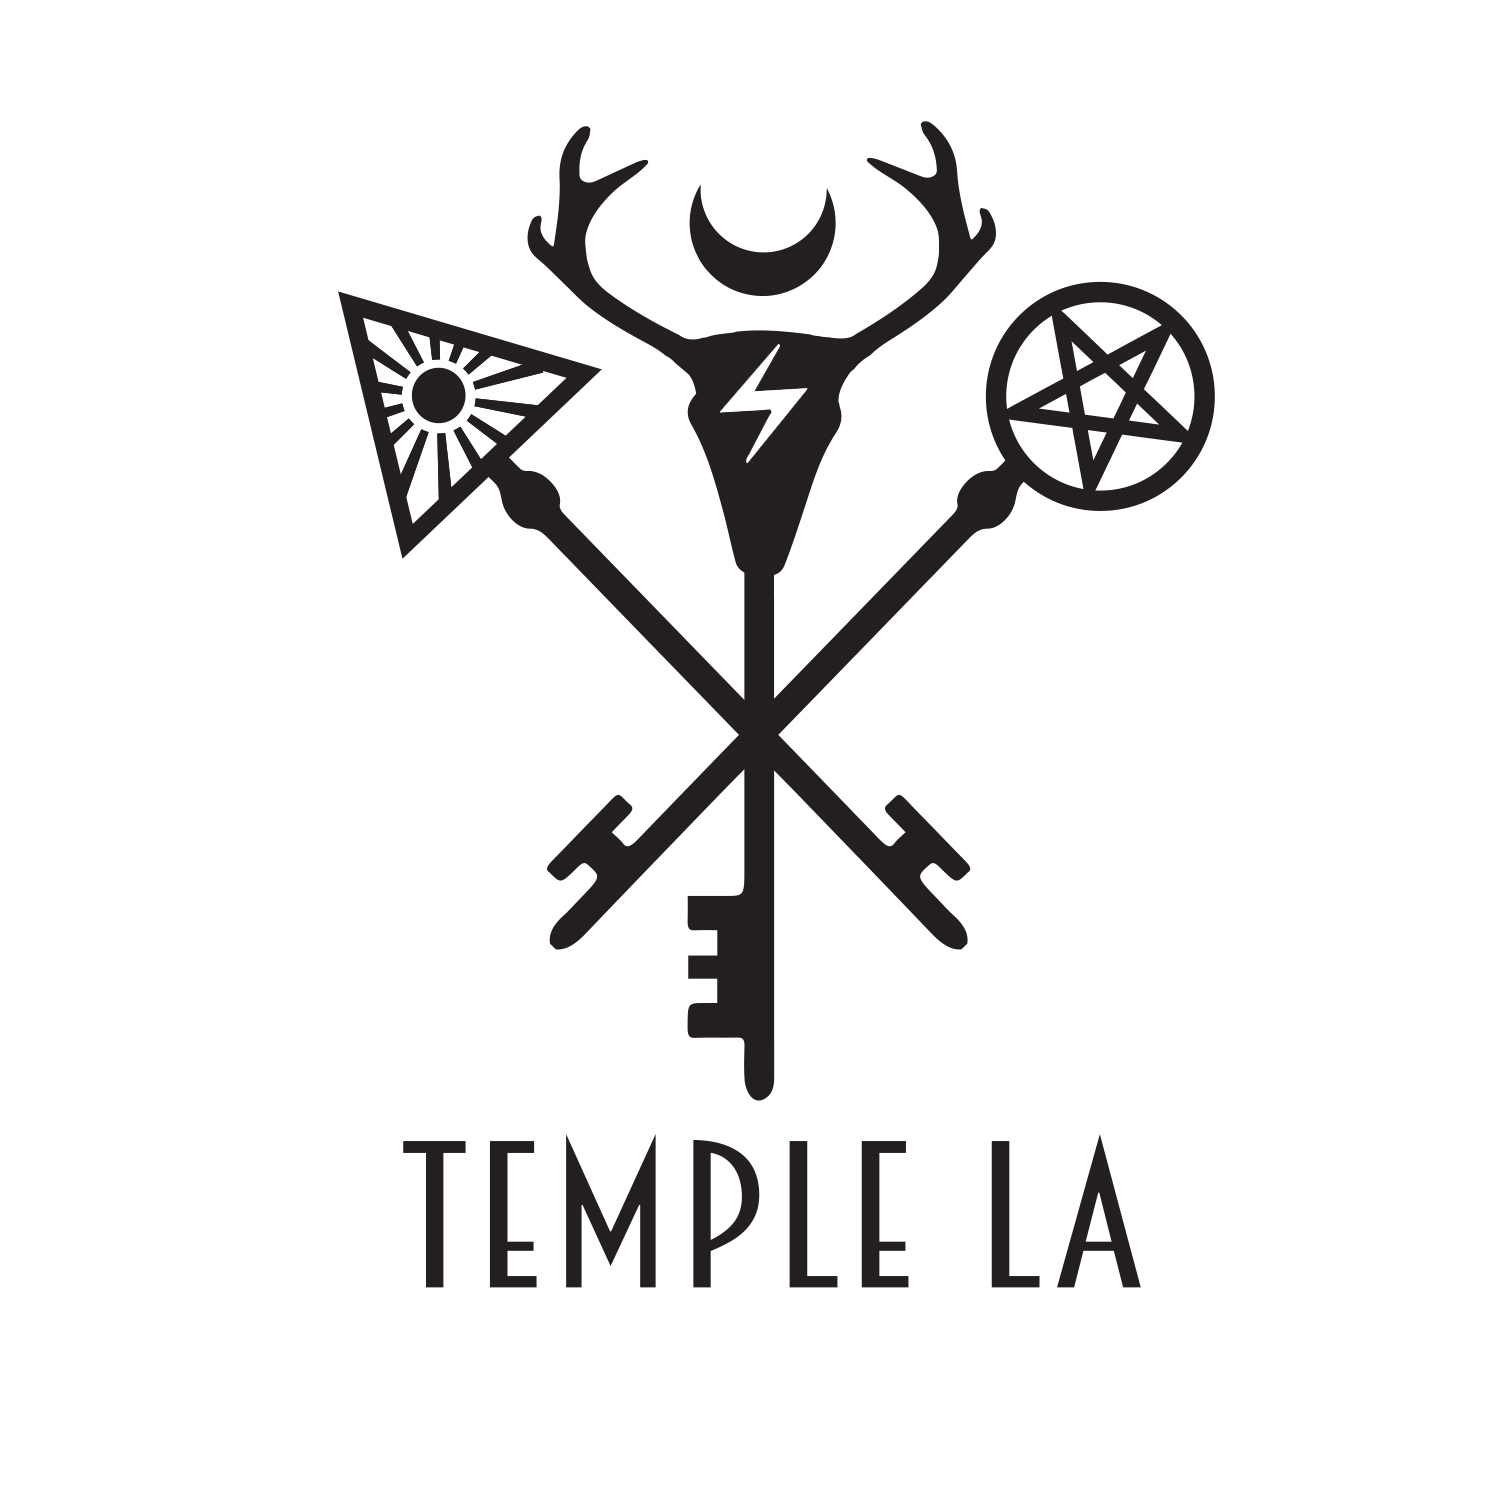 Temple Los Angeles